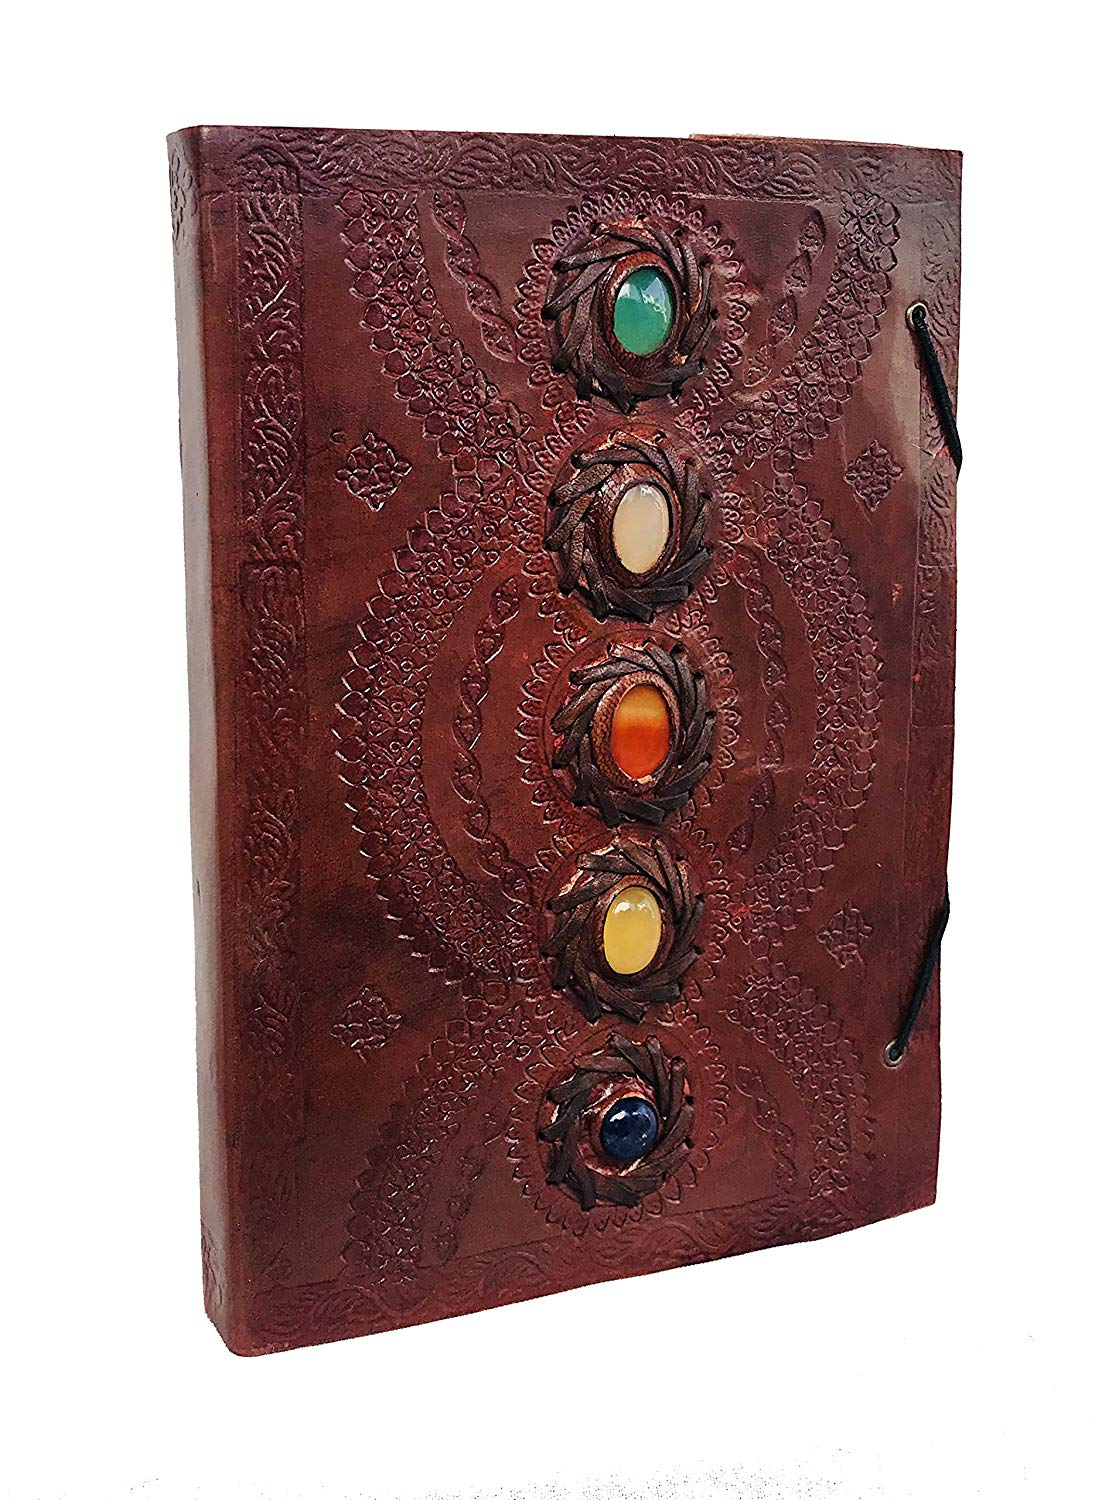 Leather Journal Book Medieval Stone Embossed Handmade Book of Shadows Notebook Office Diary College Book Poetry Book Sketch Book 10 x 7 inches - cuerobags